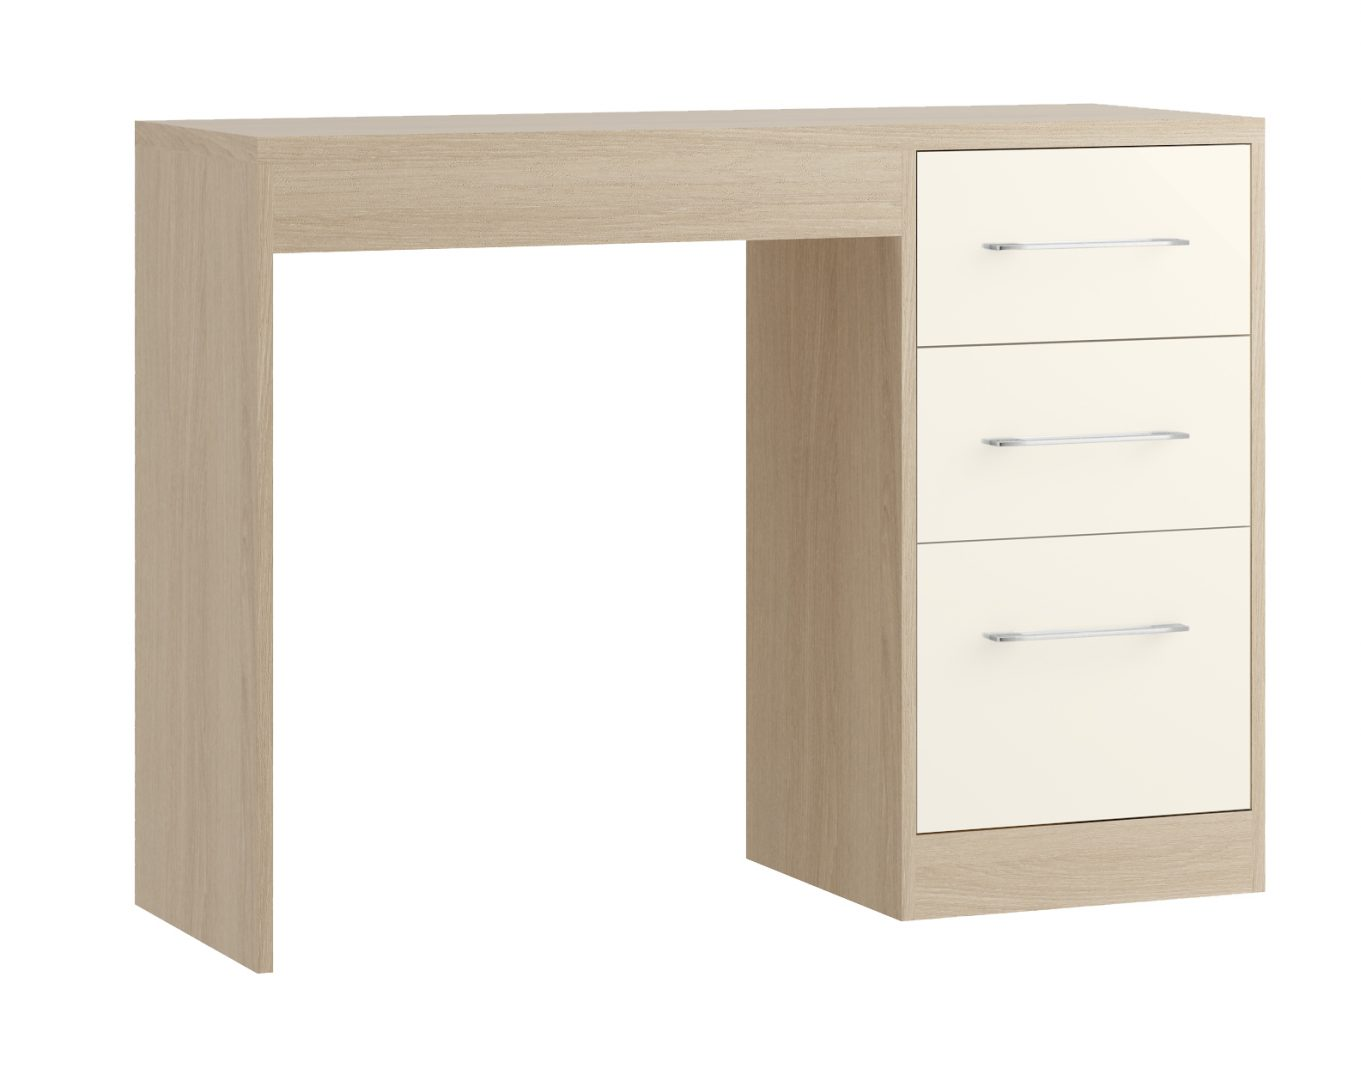 Minori Single Pedestal Desk - Light Oak, Ivory